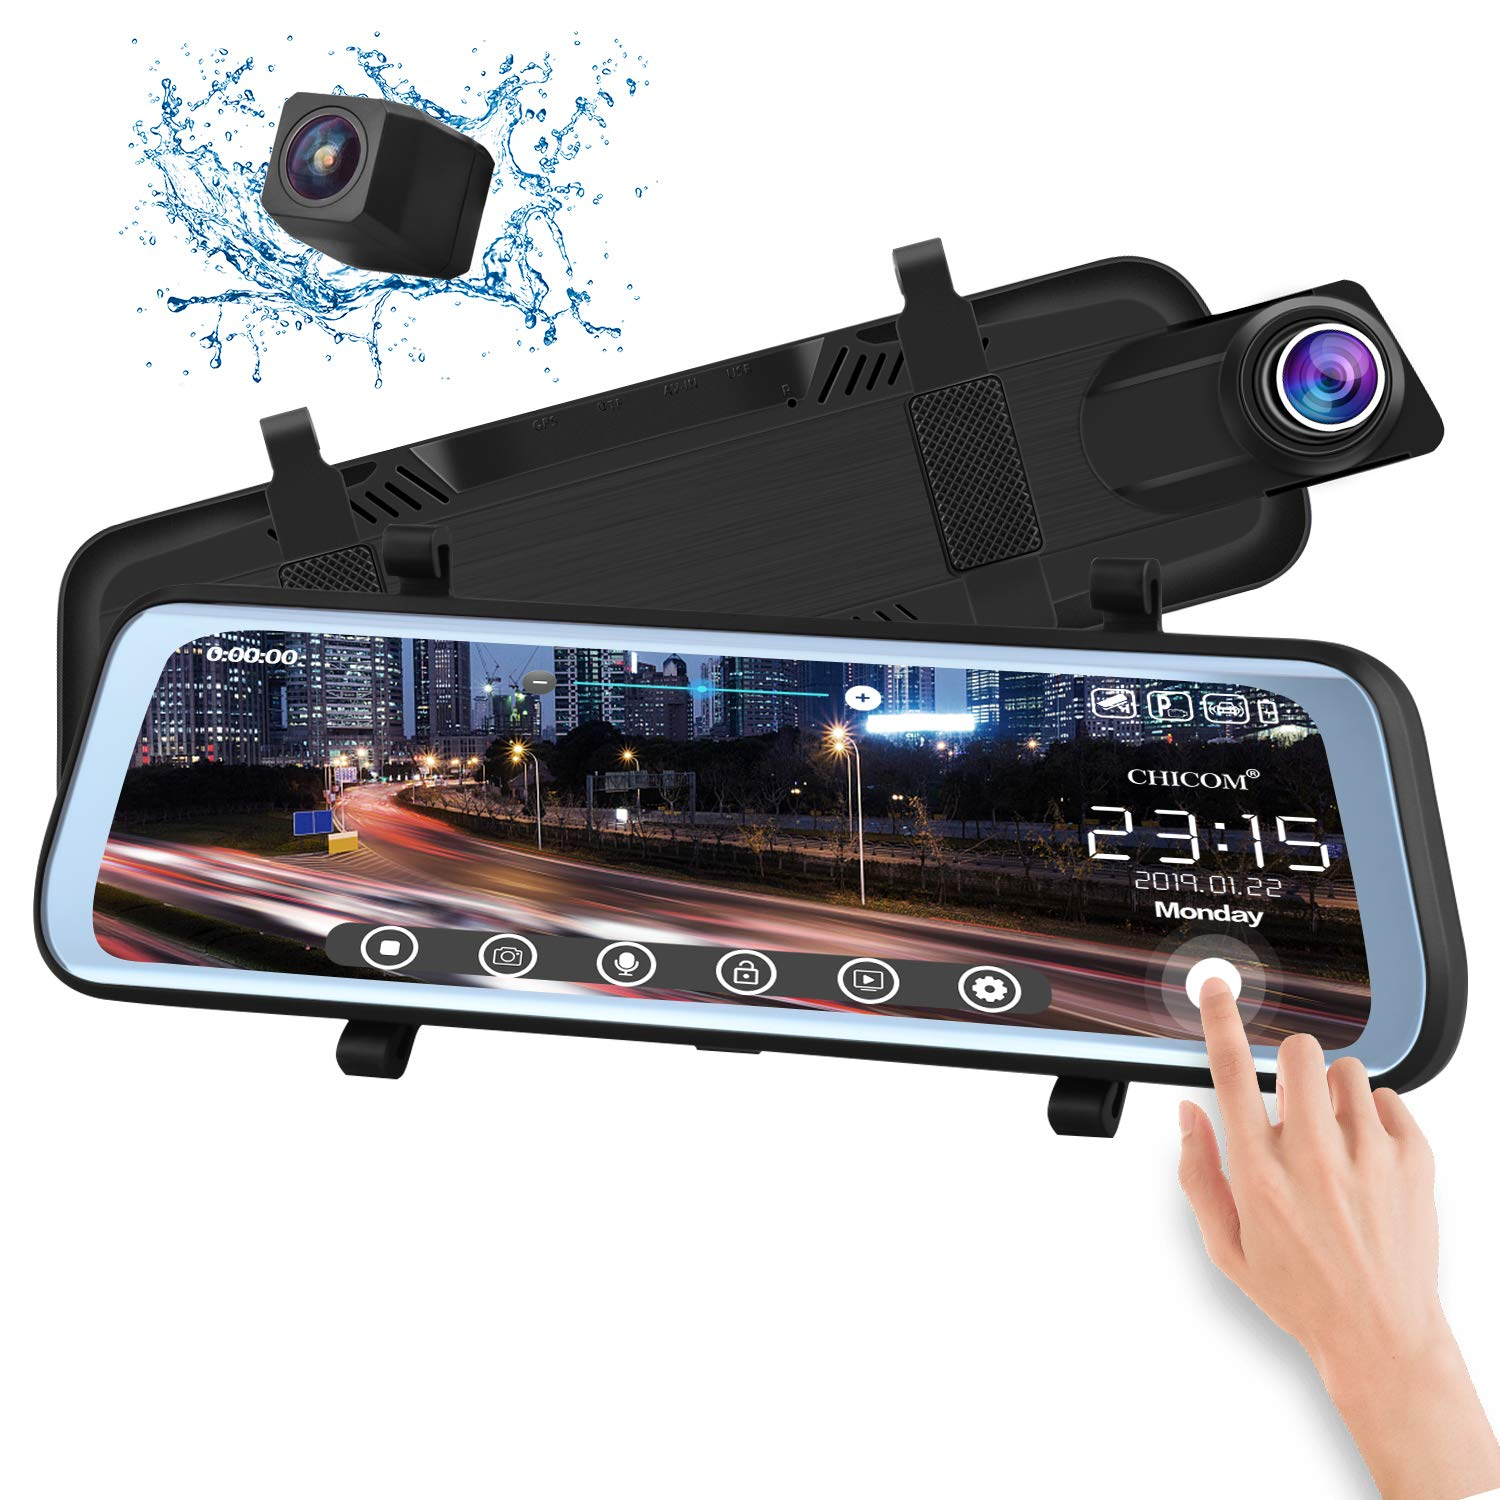 CHICOM V21 9.66 inch Mirror Dash Cam Touch Full Screen ; 1080P 170° Full HD Front Camera;1080P 140°Wide Angle Full HD Rear View Camera;Time-Lapse Photography by CHICOM